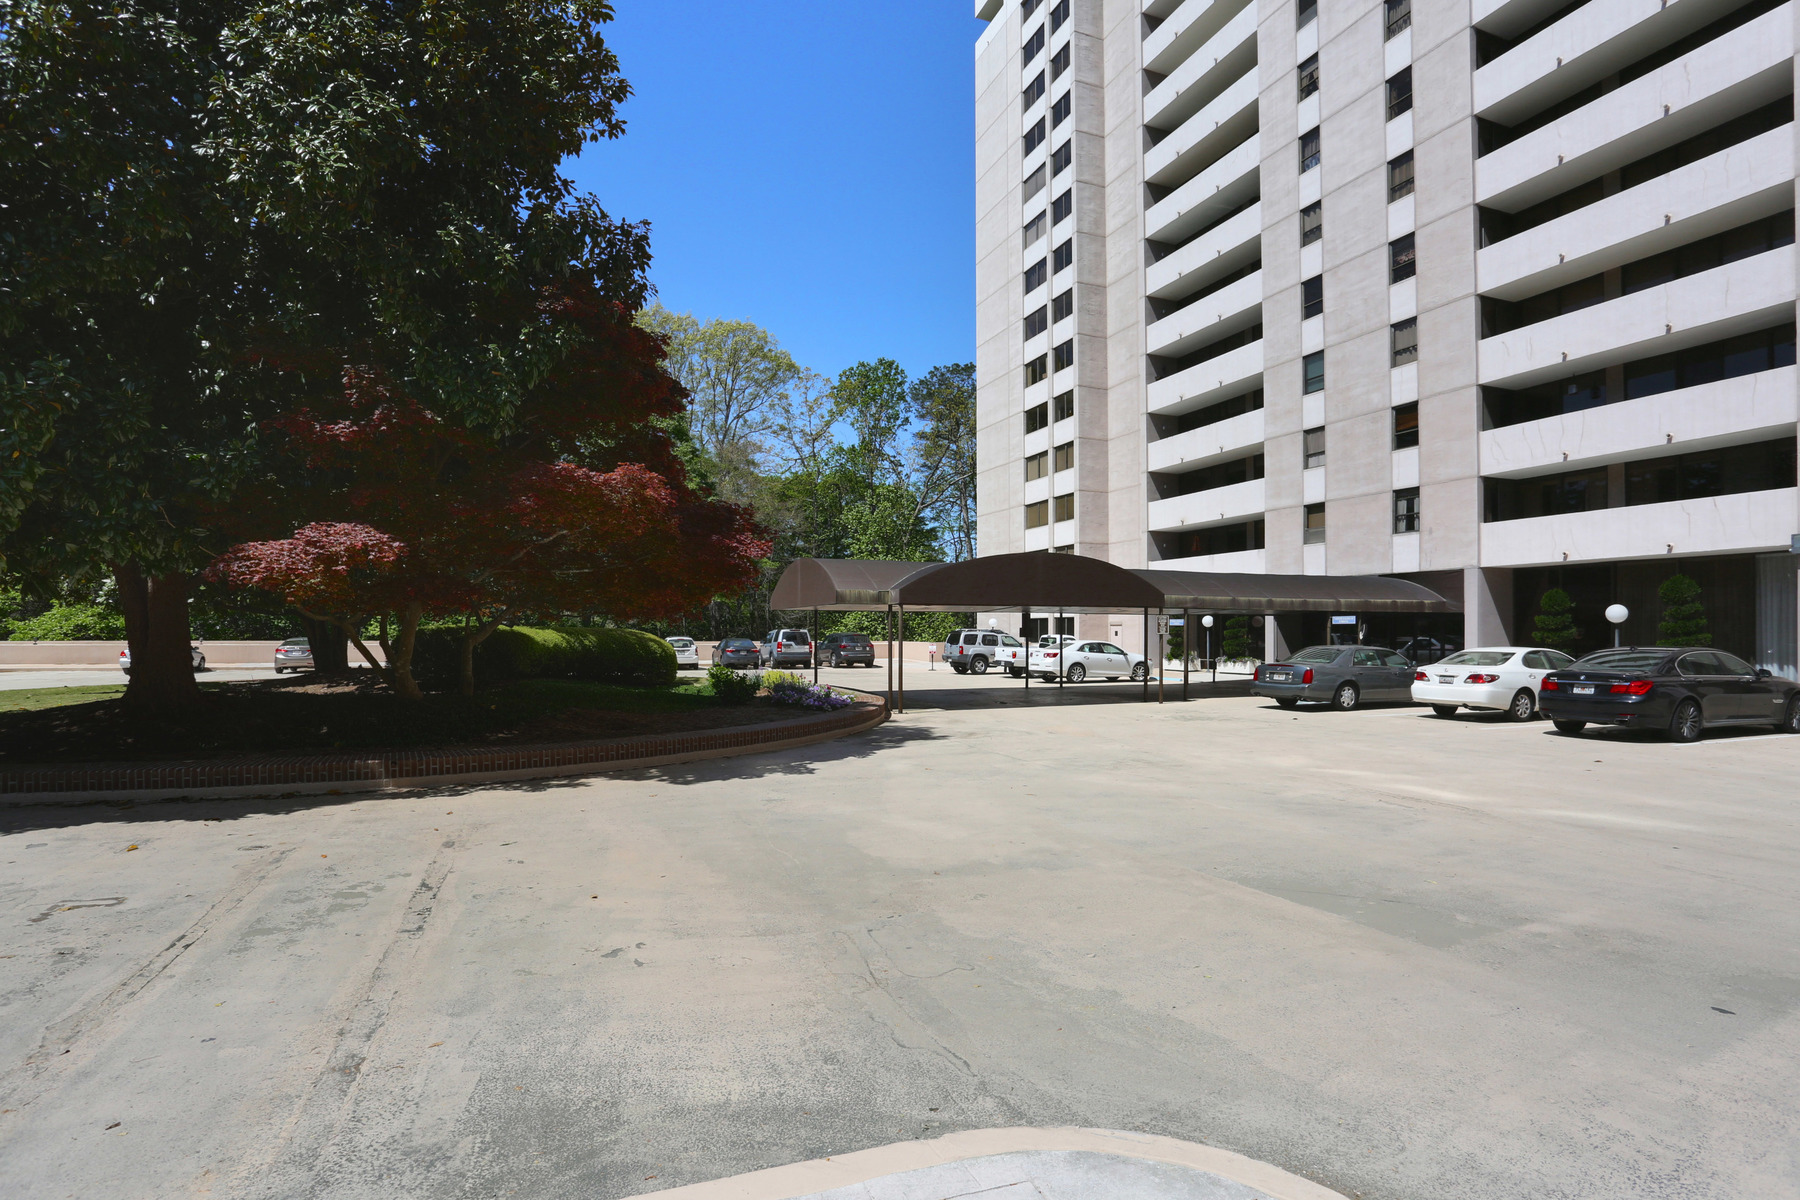 Condomínio para Venda às Spacious Condo in Prime Buckhead Location 3530 Piedmont Rd NE Unit 2-G Atlanta, Geórgia, 30305 Estados Unidos